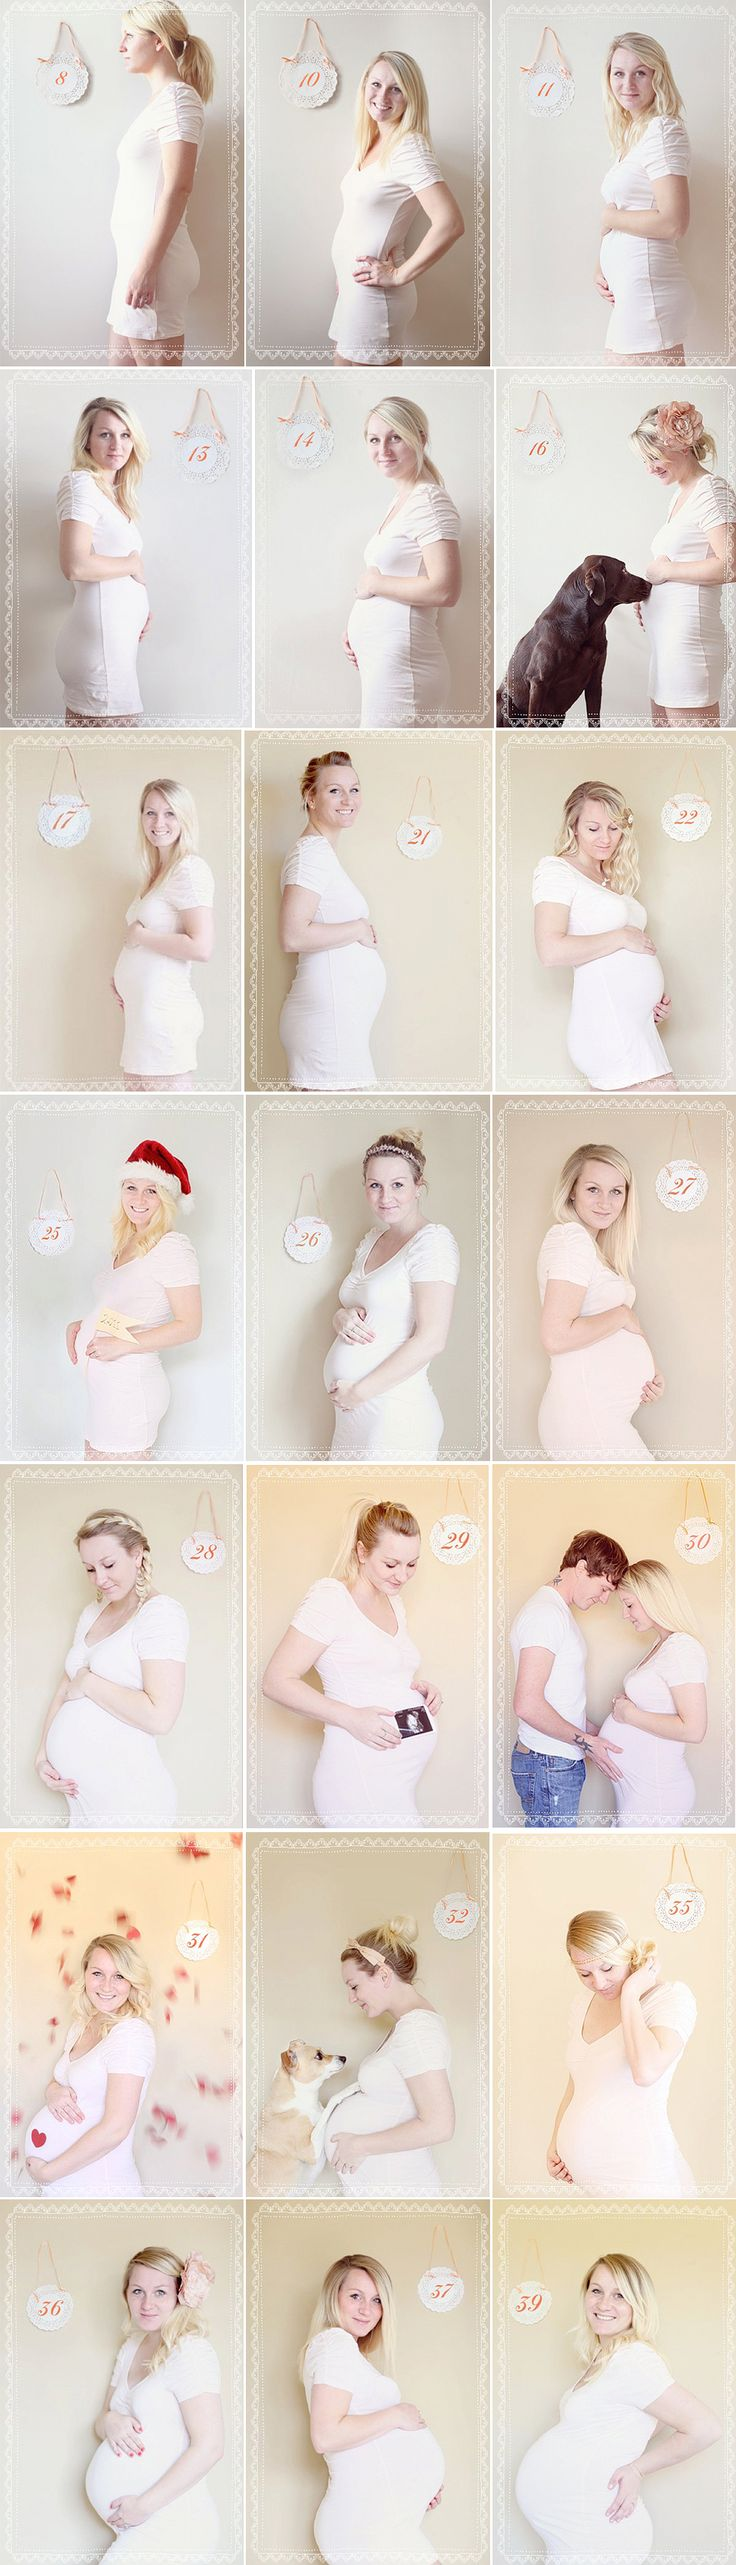 Some people are so motivated!Photos Ideas, Pregnancy Pictures, Maternity Photos, Pregnancy Photos, Maternity Pictures, Cute Ideas, Baby Bump, Pregnancy Photography, Pregnancy Pics